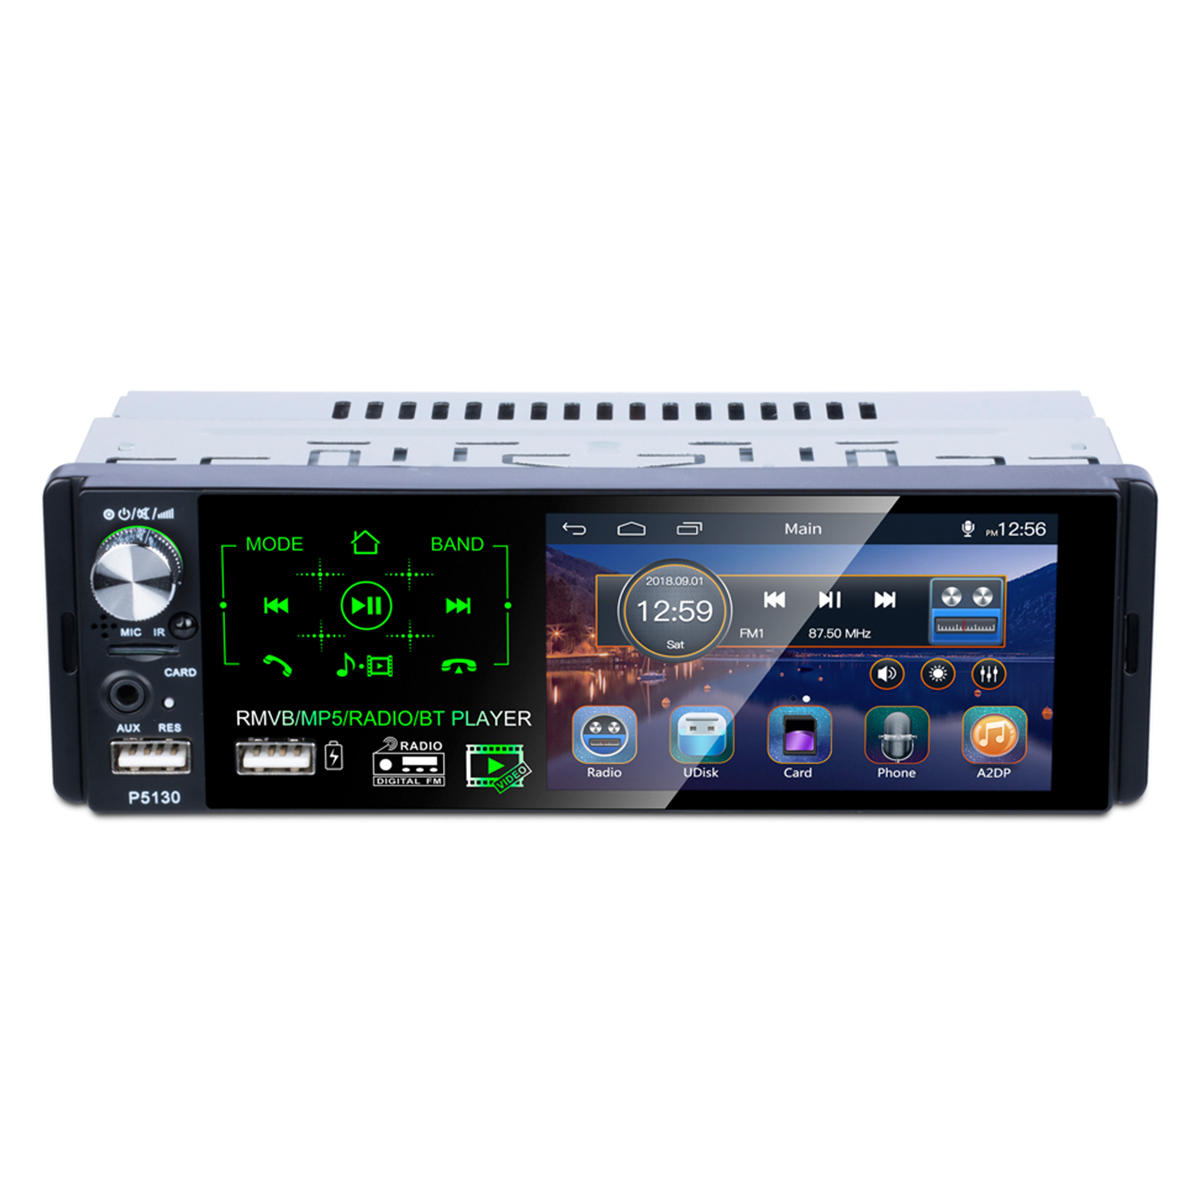 P5130 4.1 Inch 1 DIN Car Radio Touch Screen MP5 Player FM AM RDS bluetooth AUX Backup Camera with Steering Wheel Control